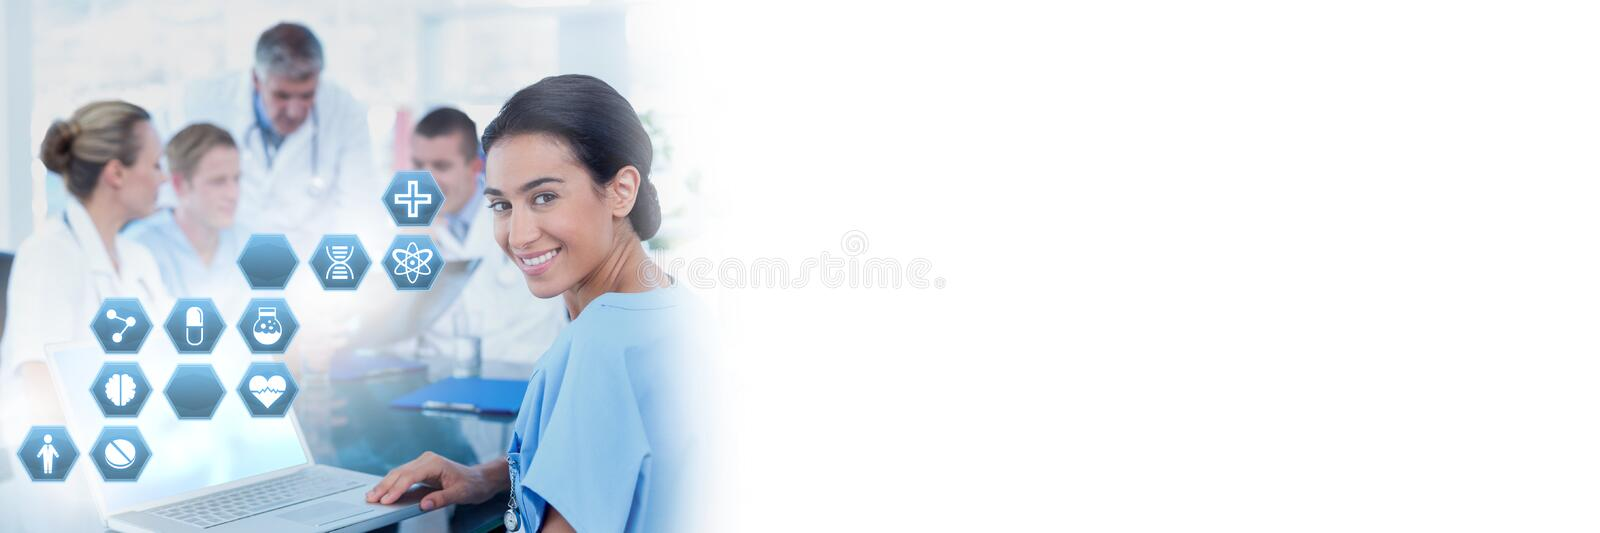 Female doctor holding tablet with medical interface hexagon icons royalty free stock photography